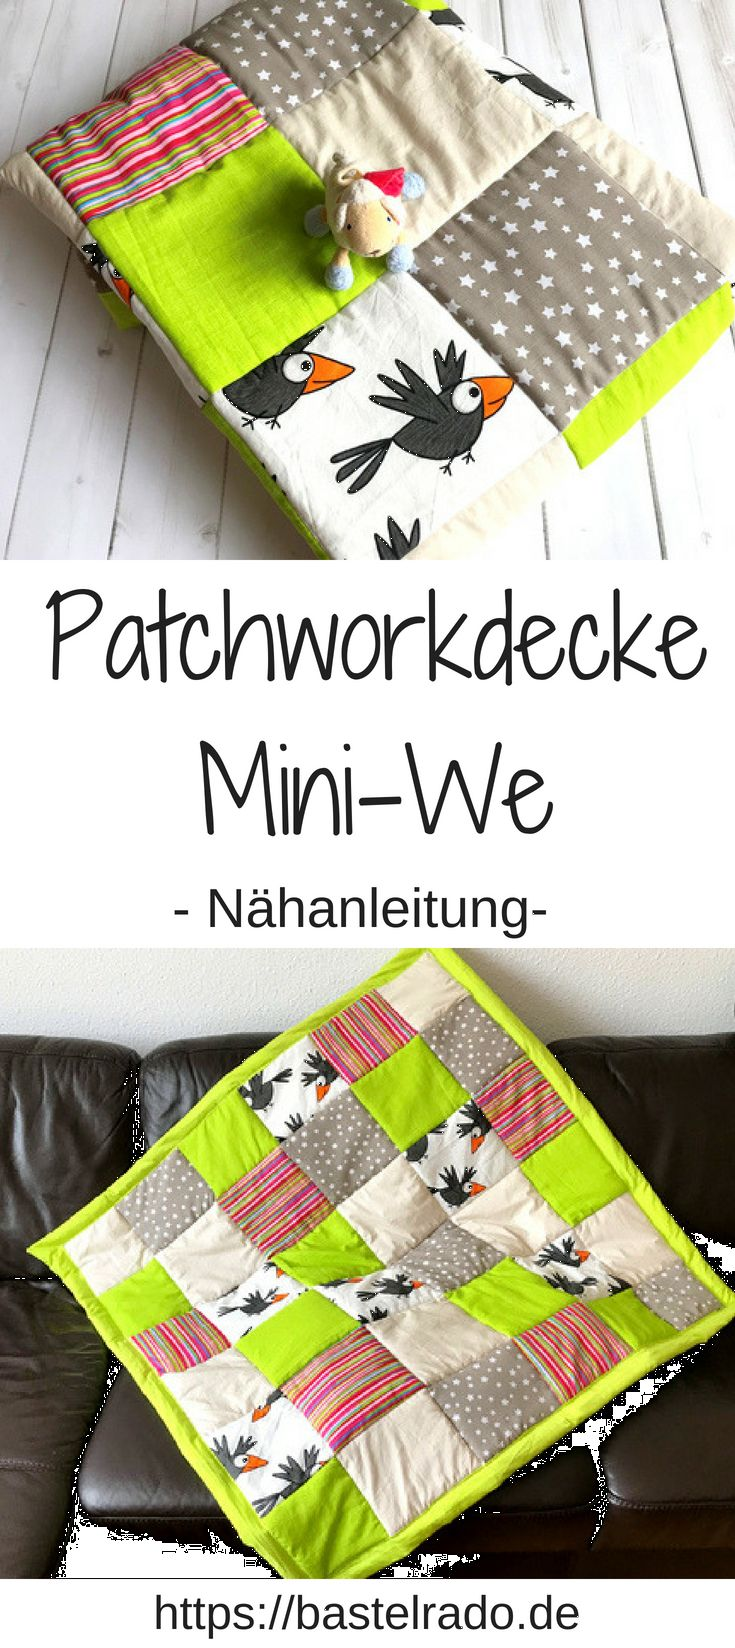 Patchwork Blanket Mini-We: close the blanket yourself!